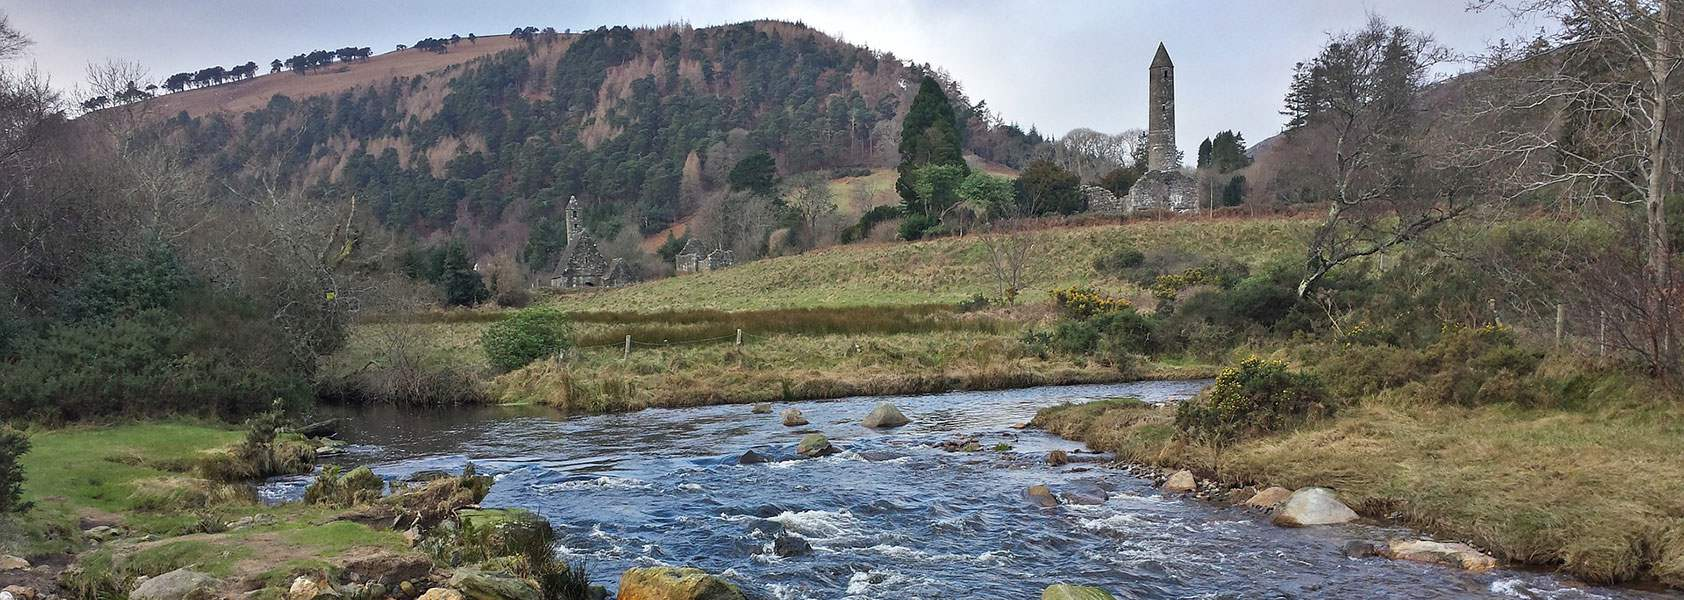 Single Reis Ierland | Wandelen over de Wicklow Way